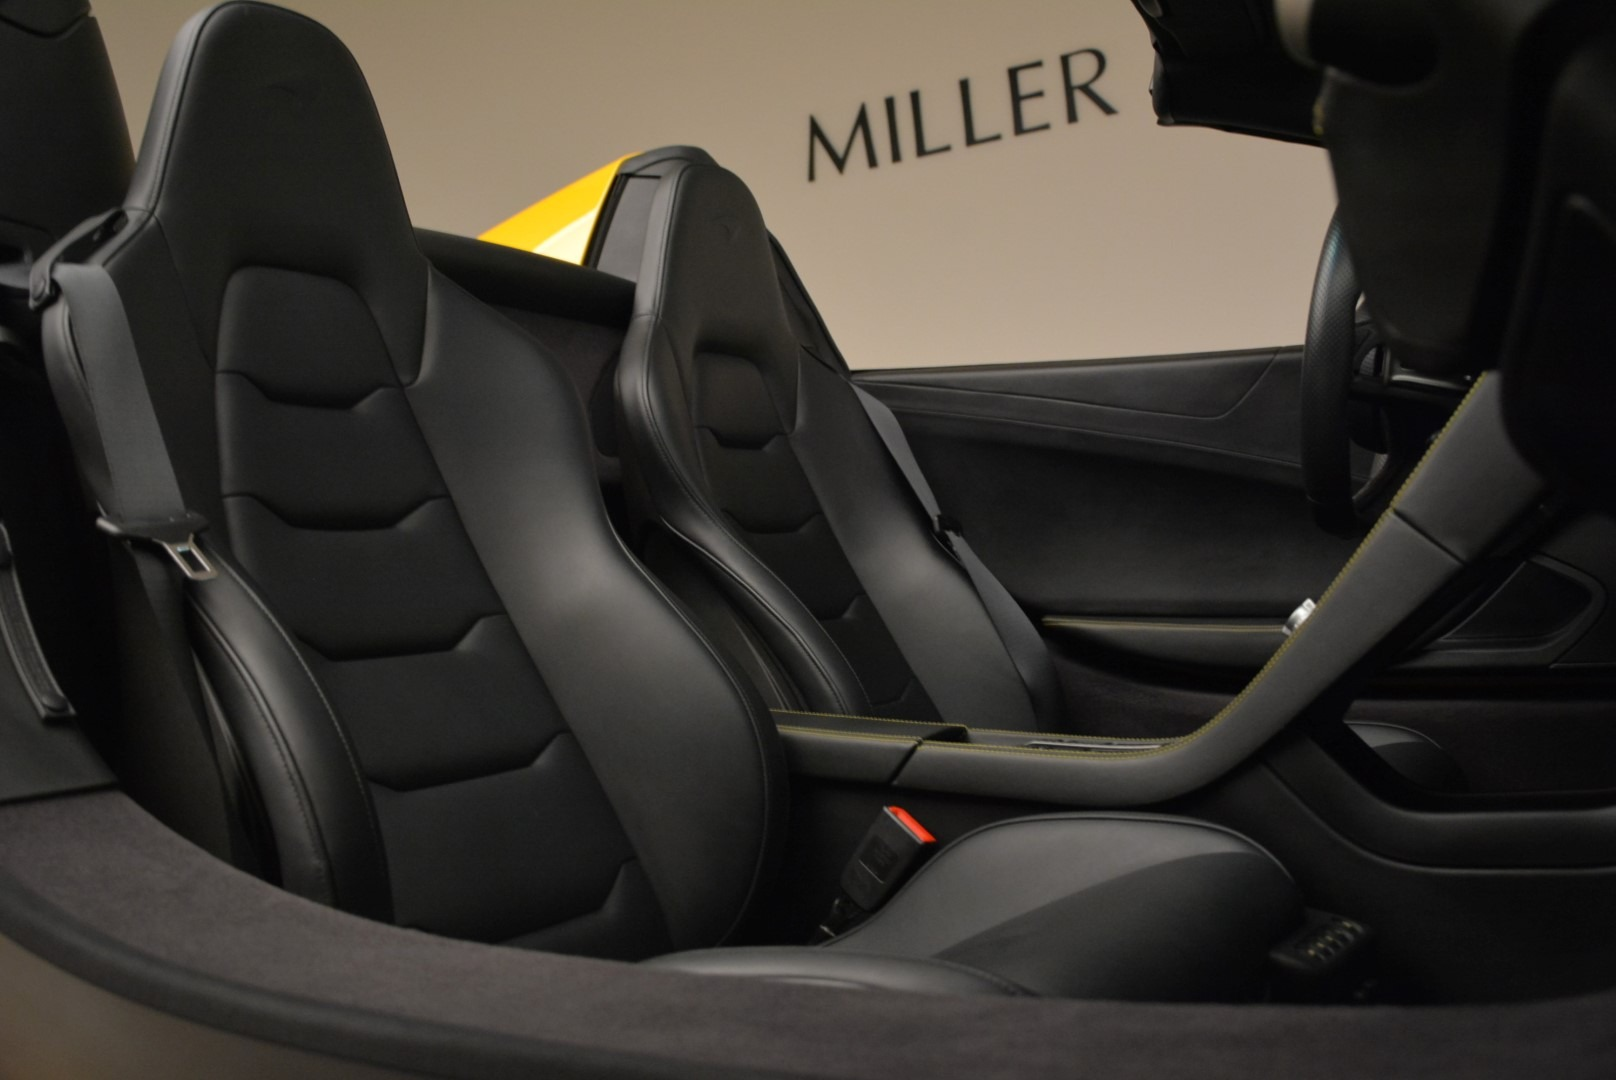 Used 2014 McLaren MP4-12C Spider For Sale In Greenwich, CT 2057_p31